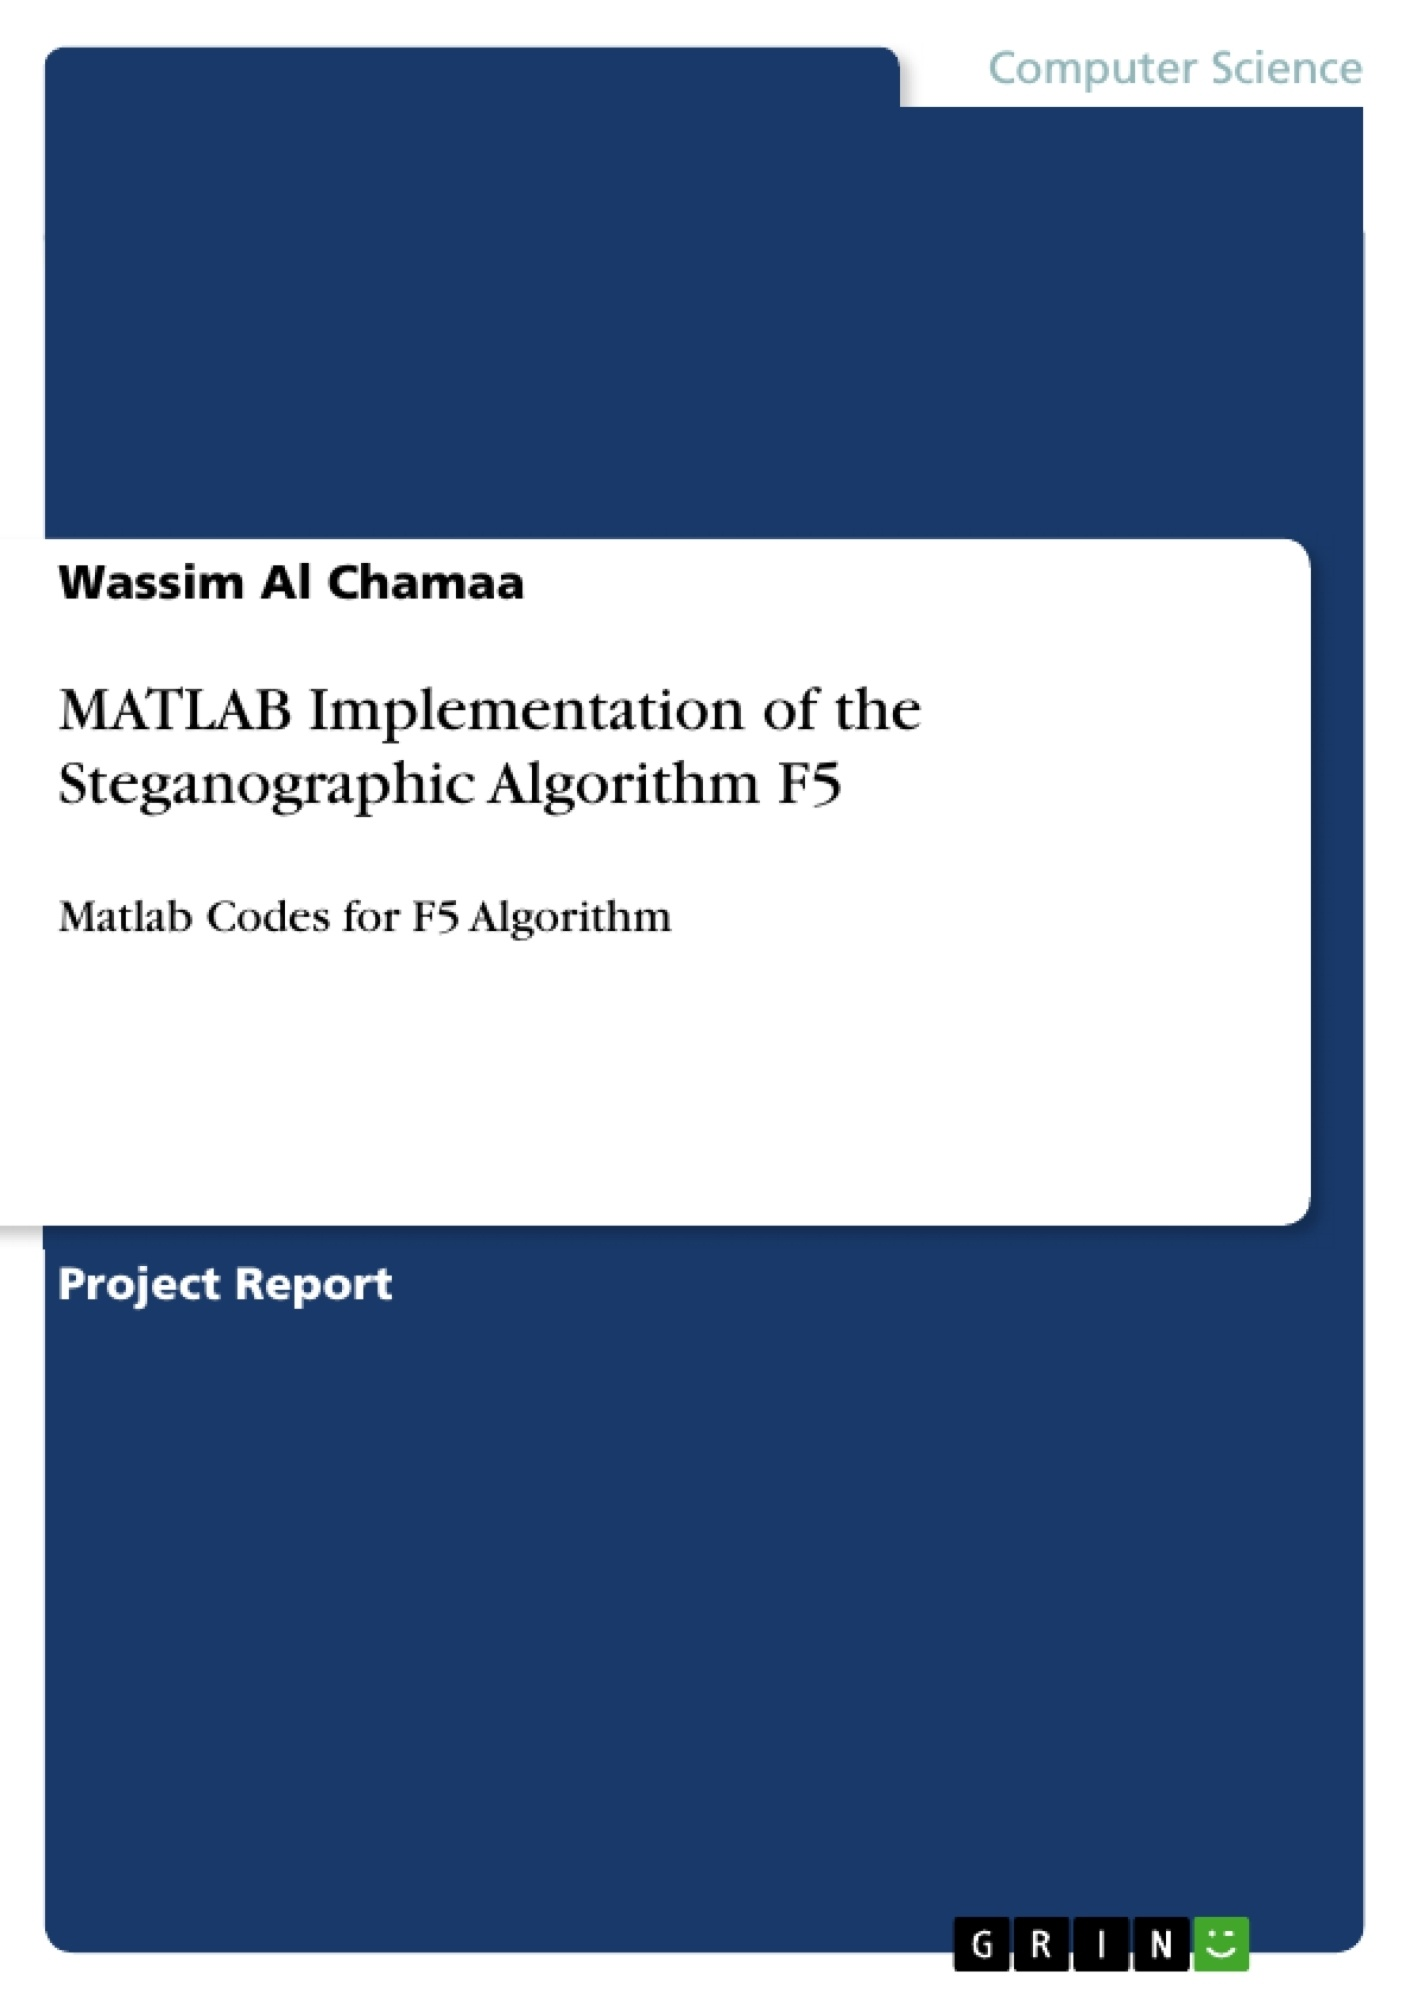 Title: MATLAB Implementation of the Steganographic Algorithm F5